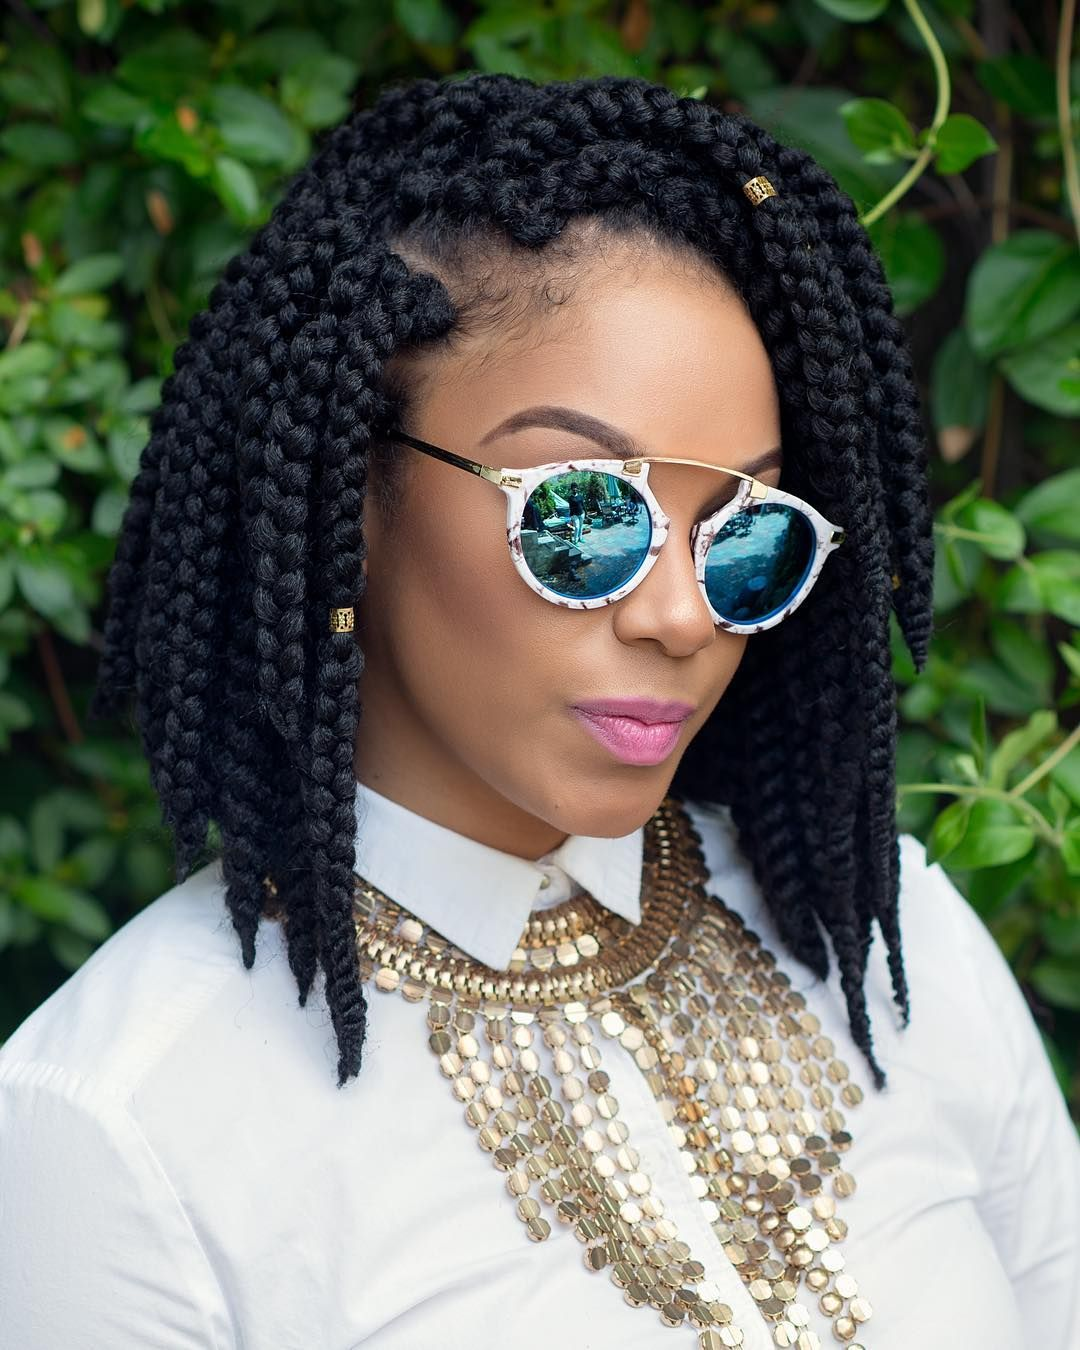 African Braids Hairstyles best african braids hairstyle you can try now 80 Majestic African Braids Hairstyles Embrace The Braiding Art